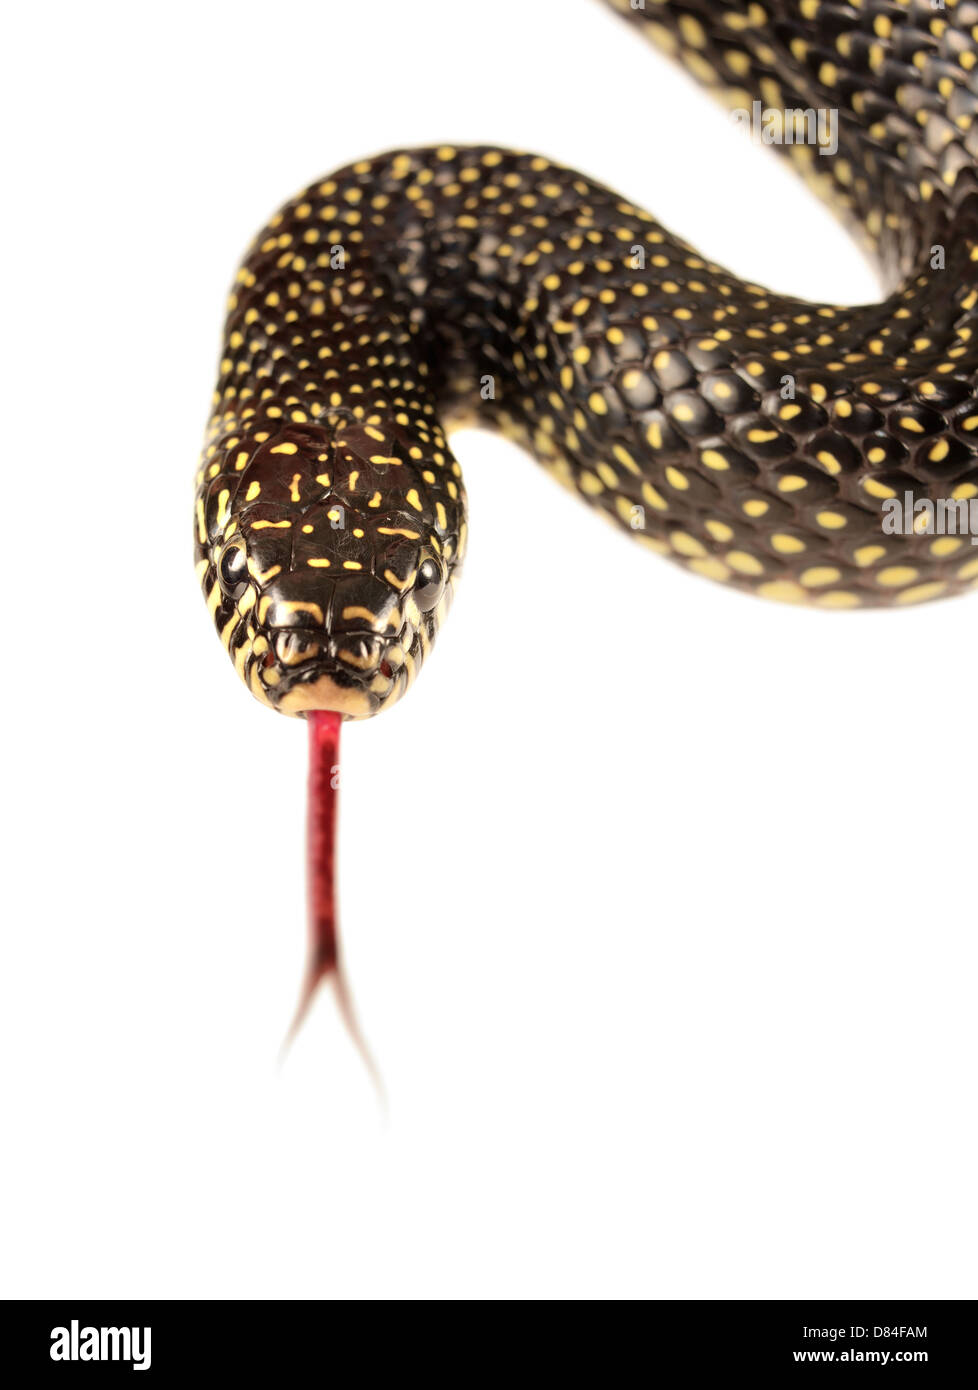 Speckled kingsnake isolated on white background. - Stock Image